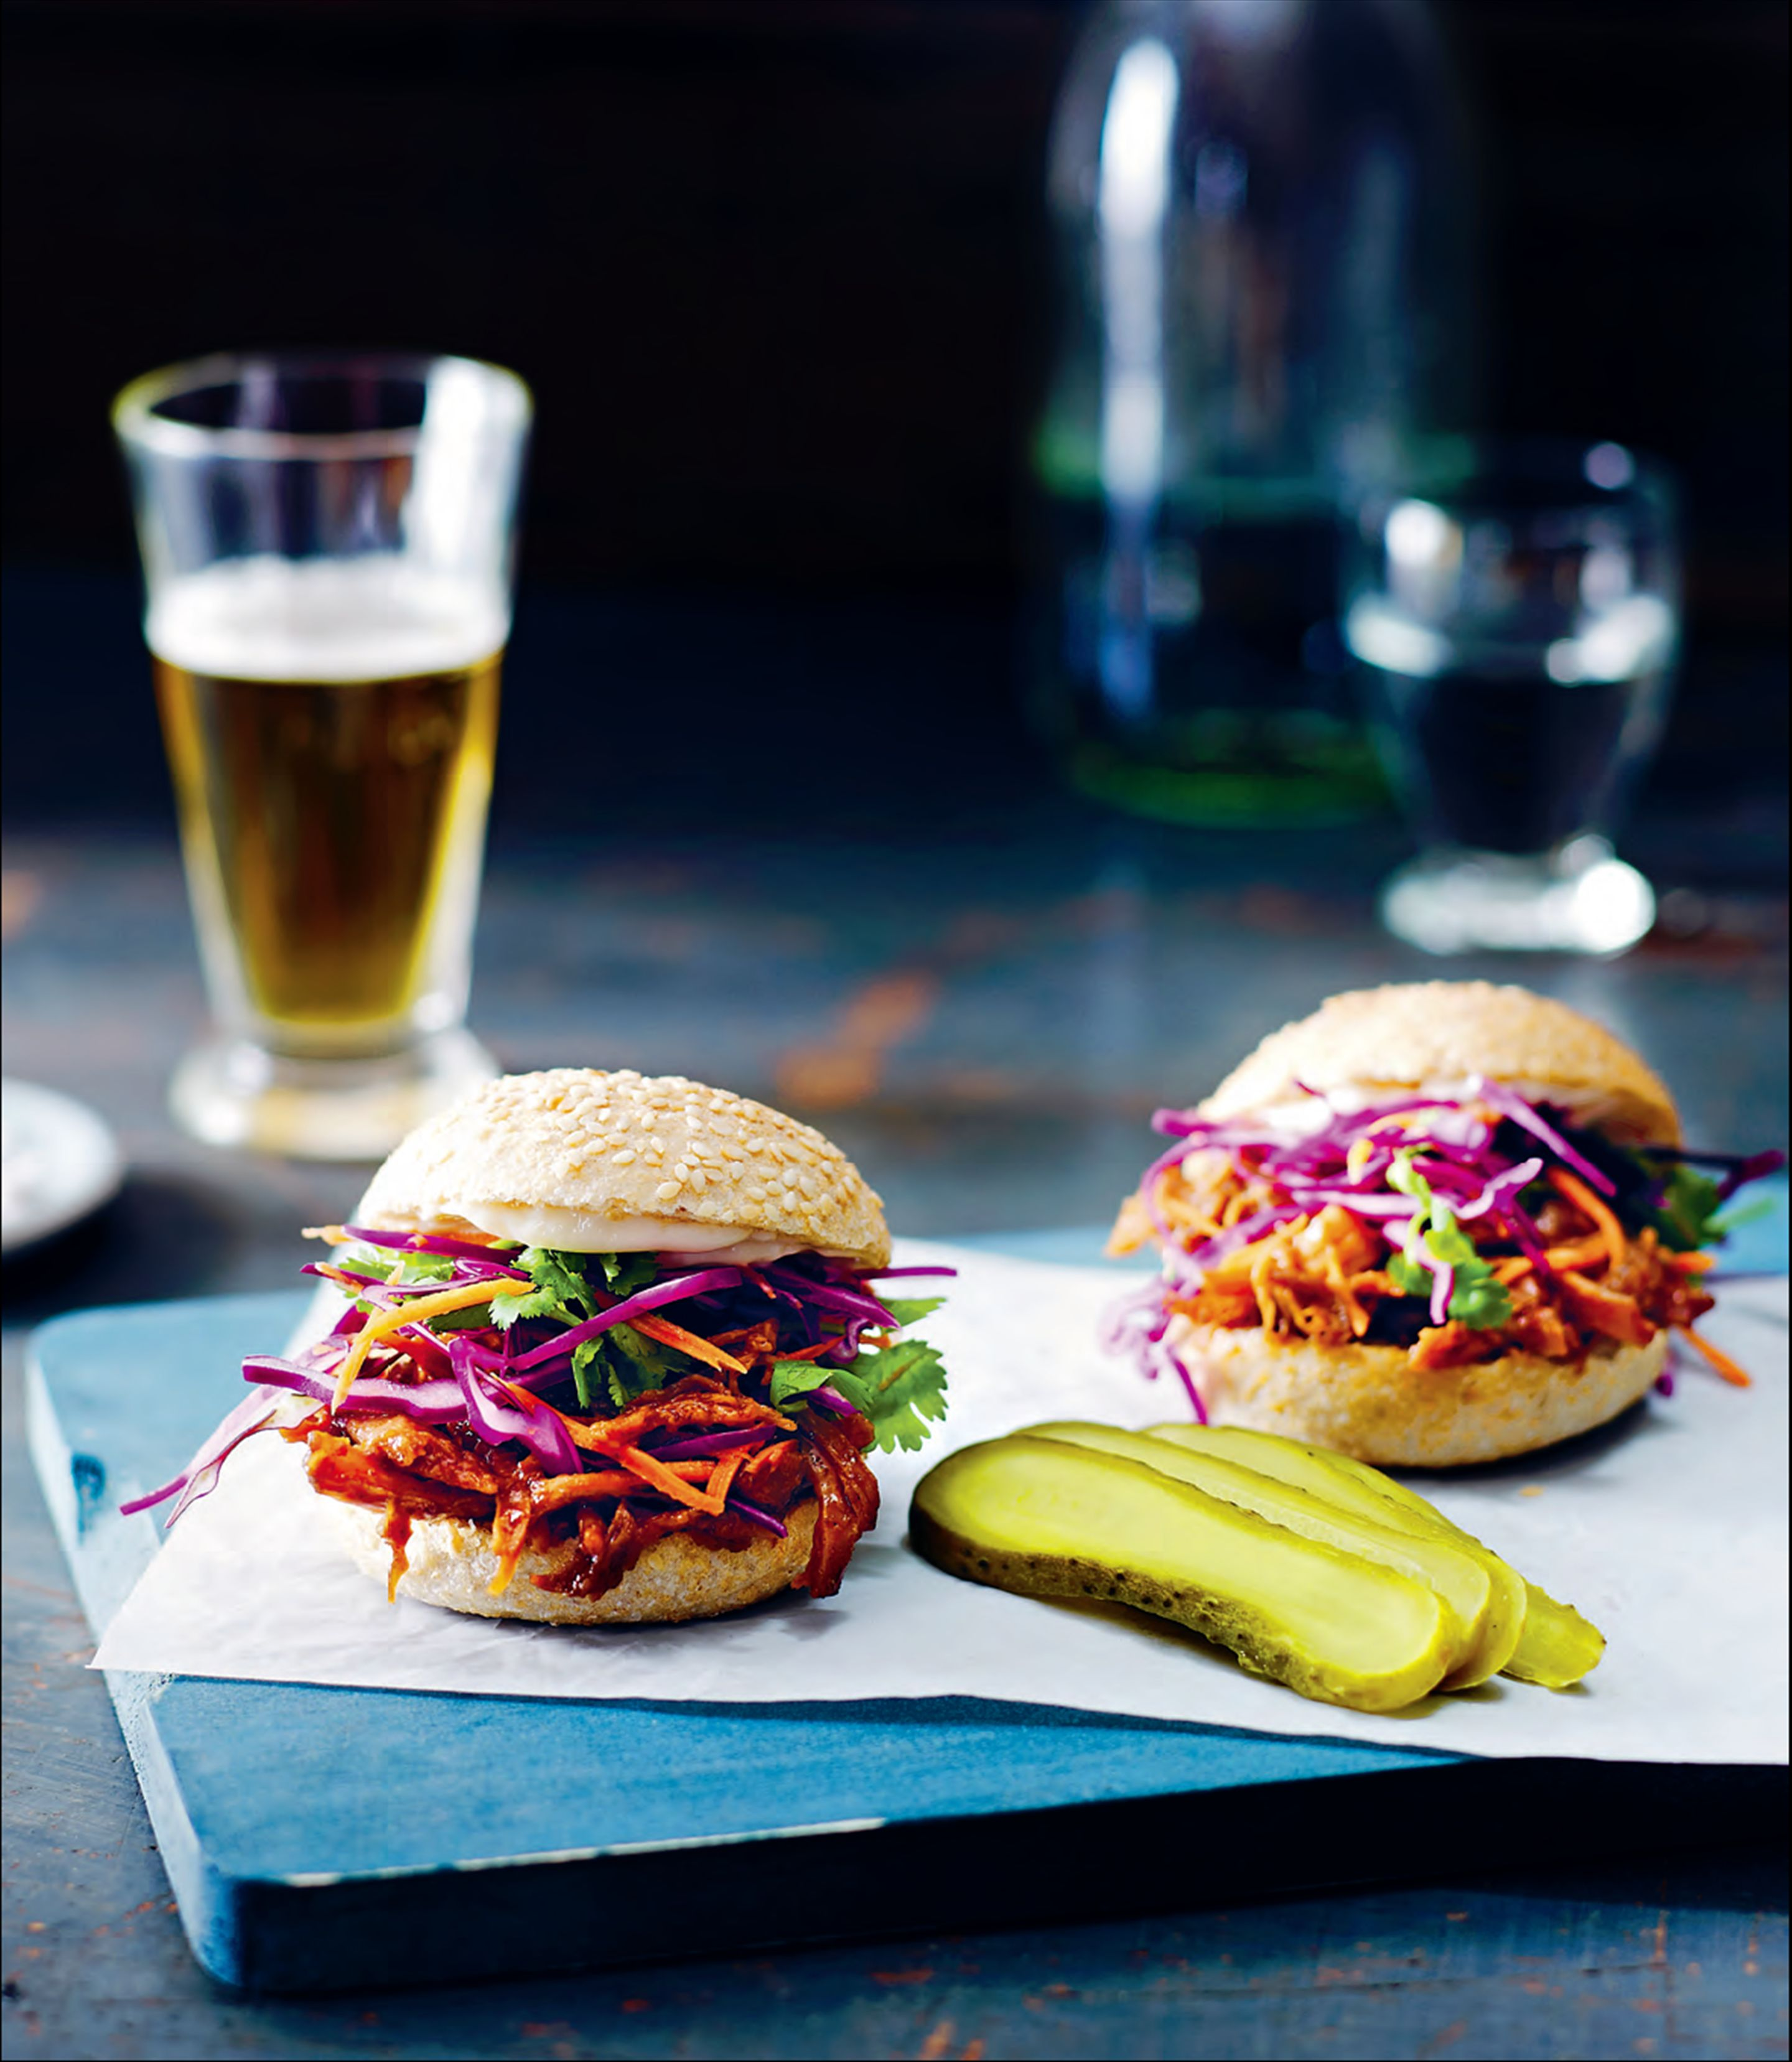 Pulled pork sliders with coleslaw and pickles